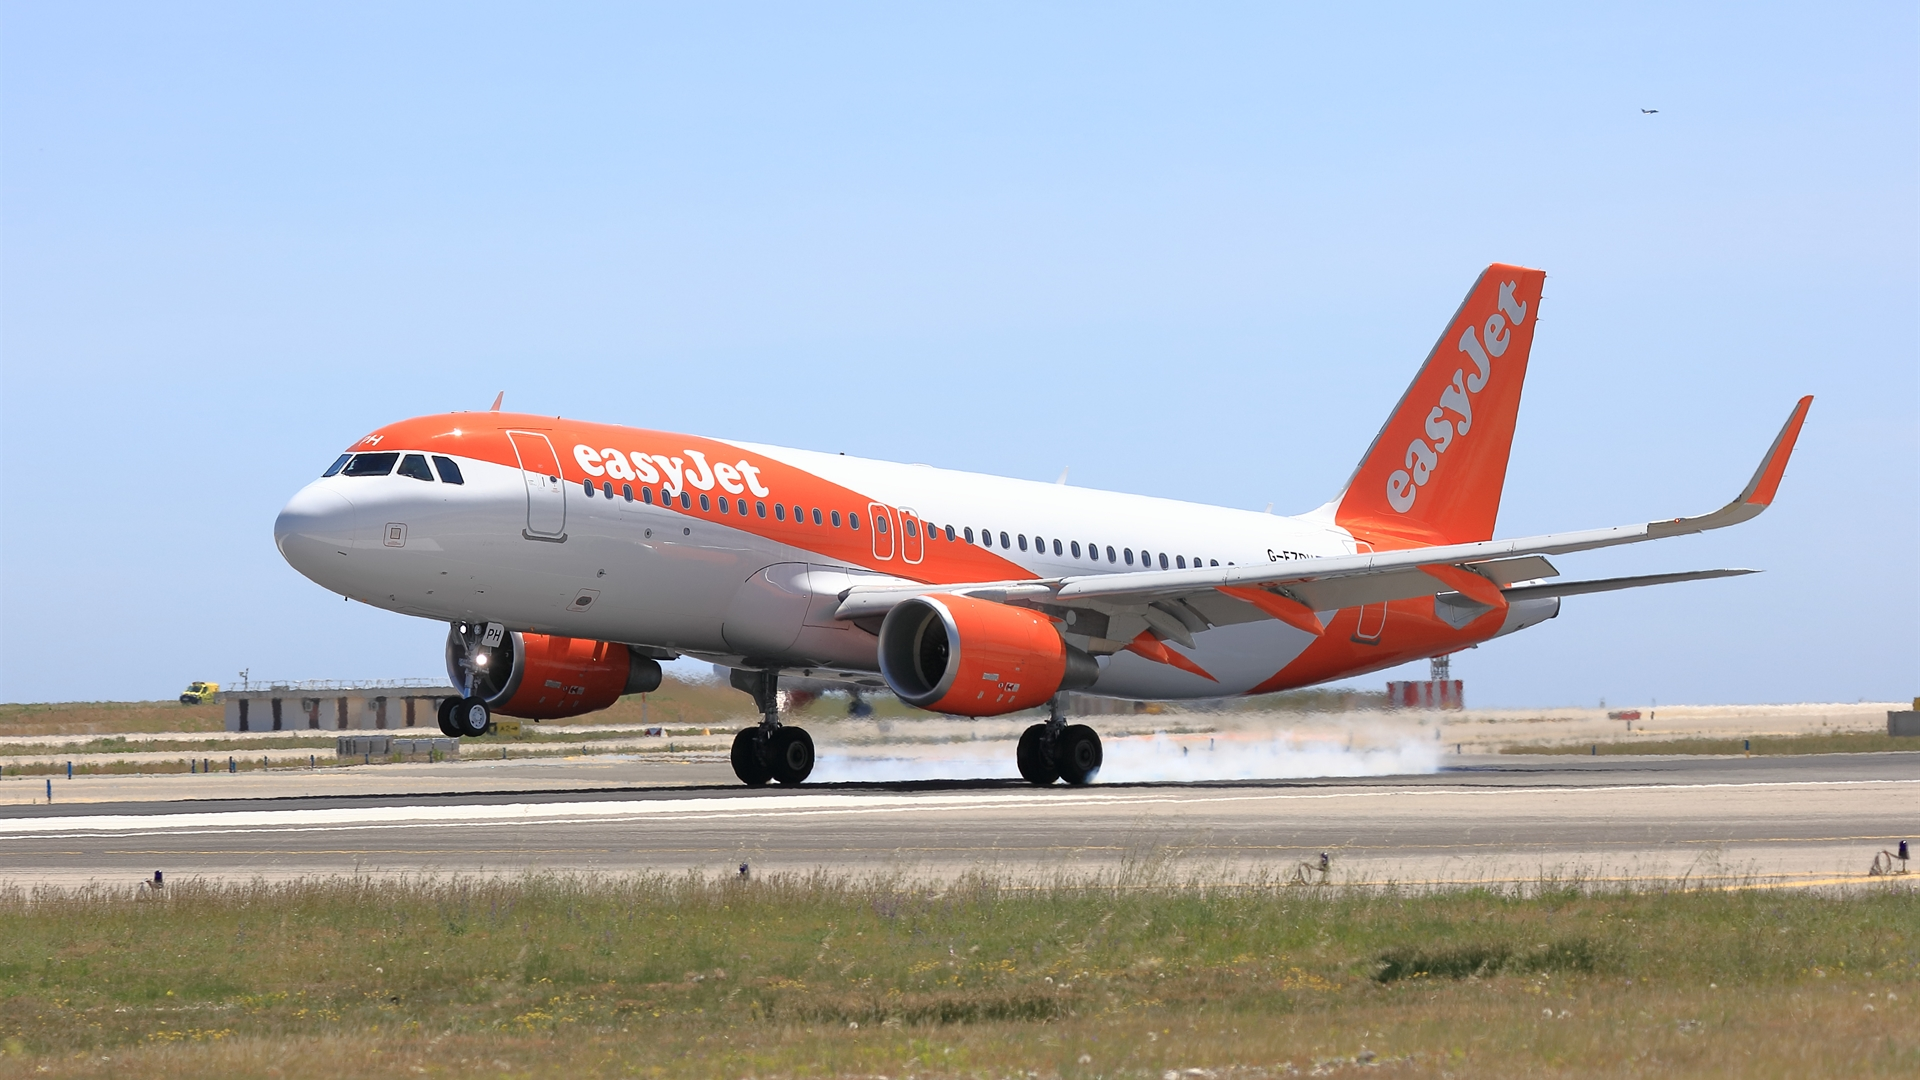 EasyJet A320 on runway